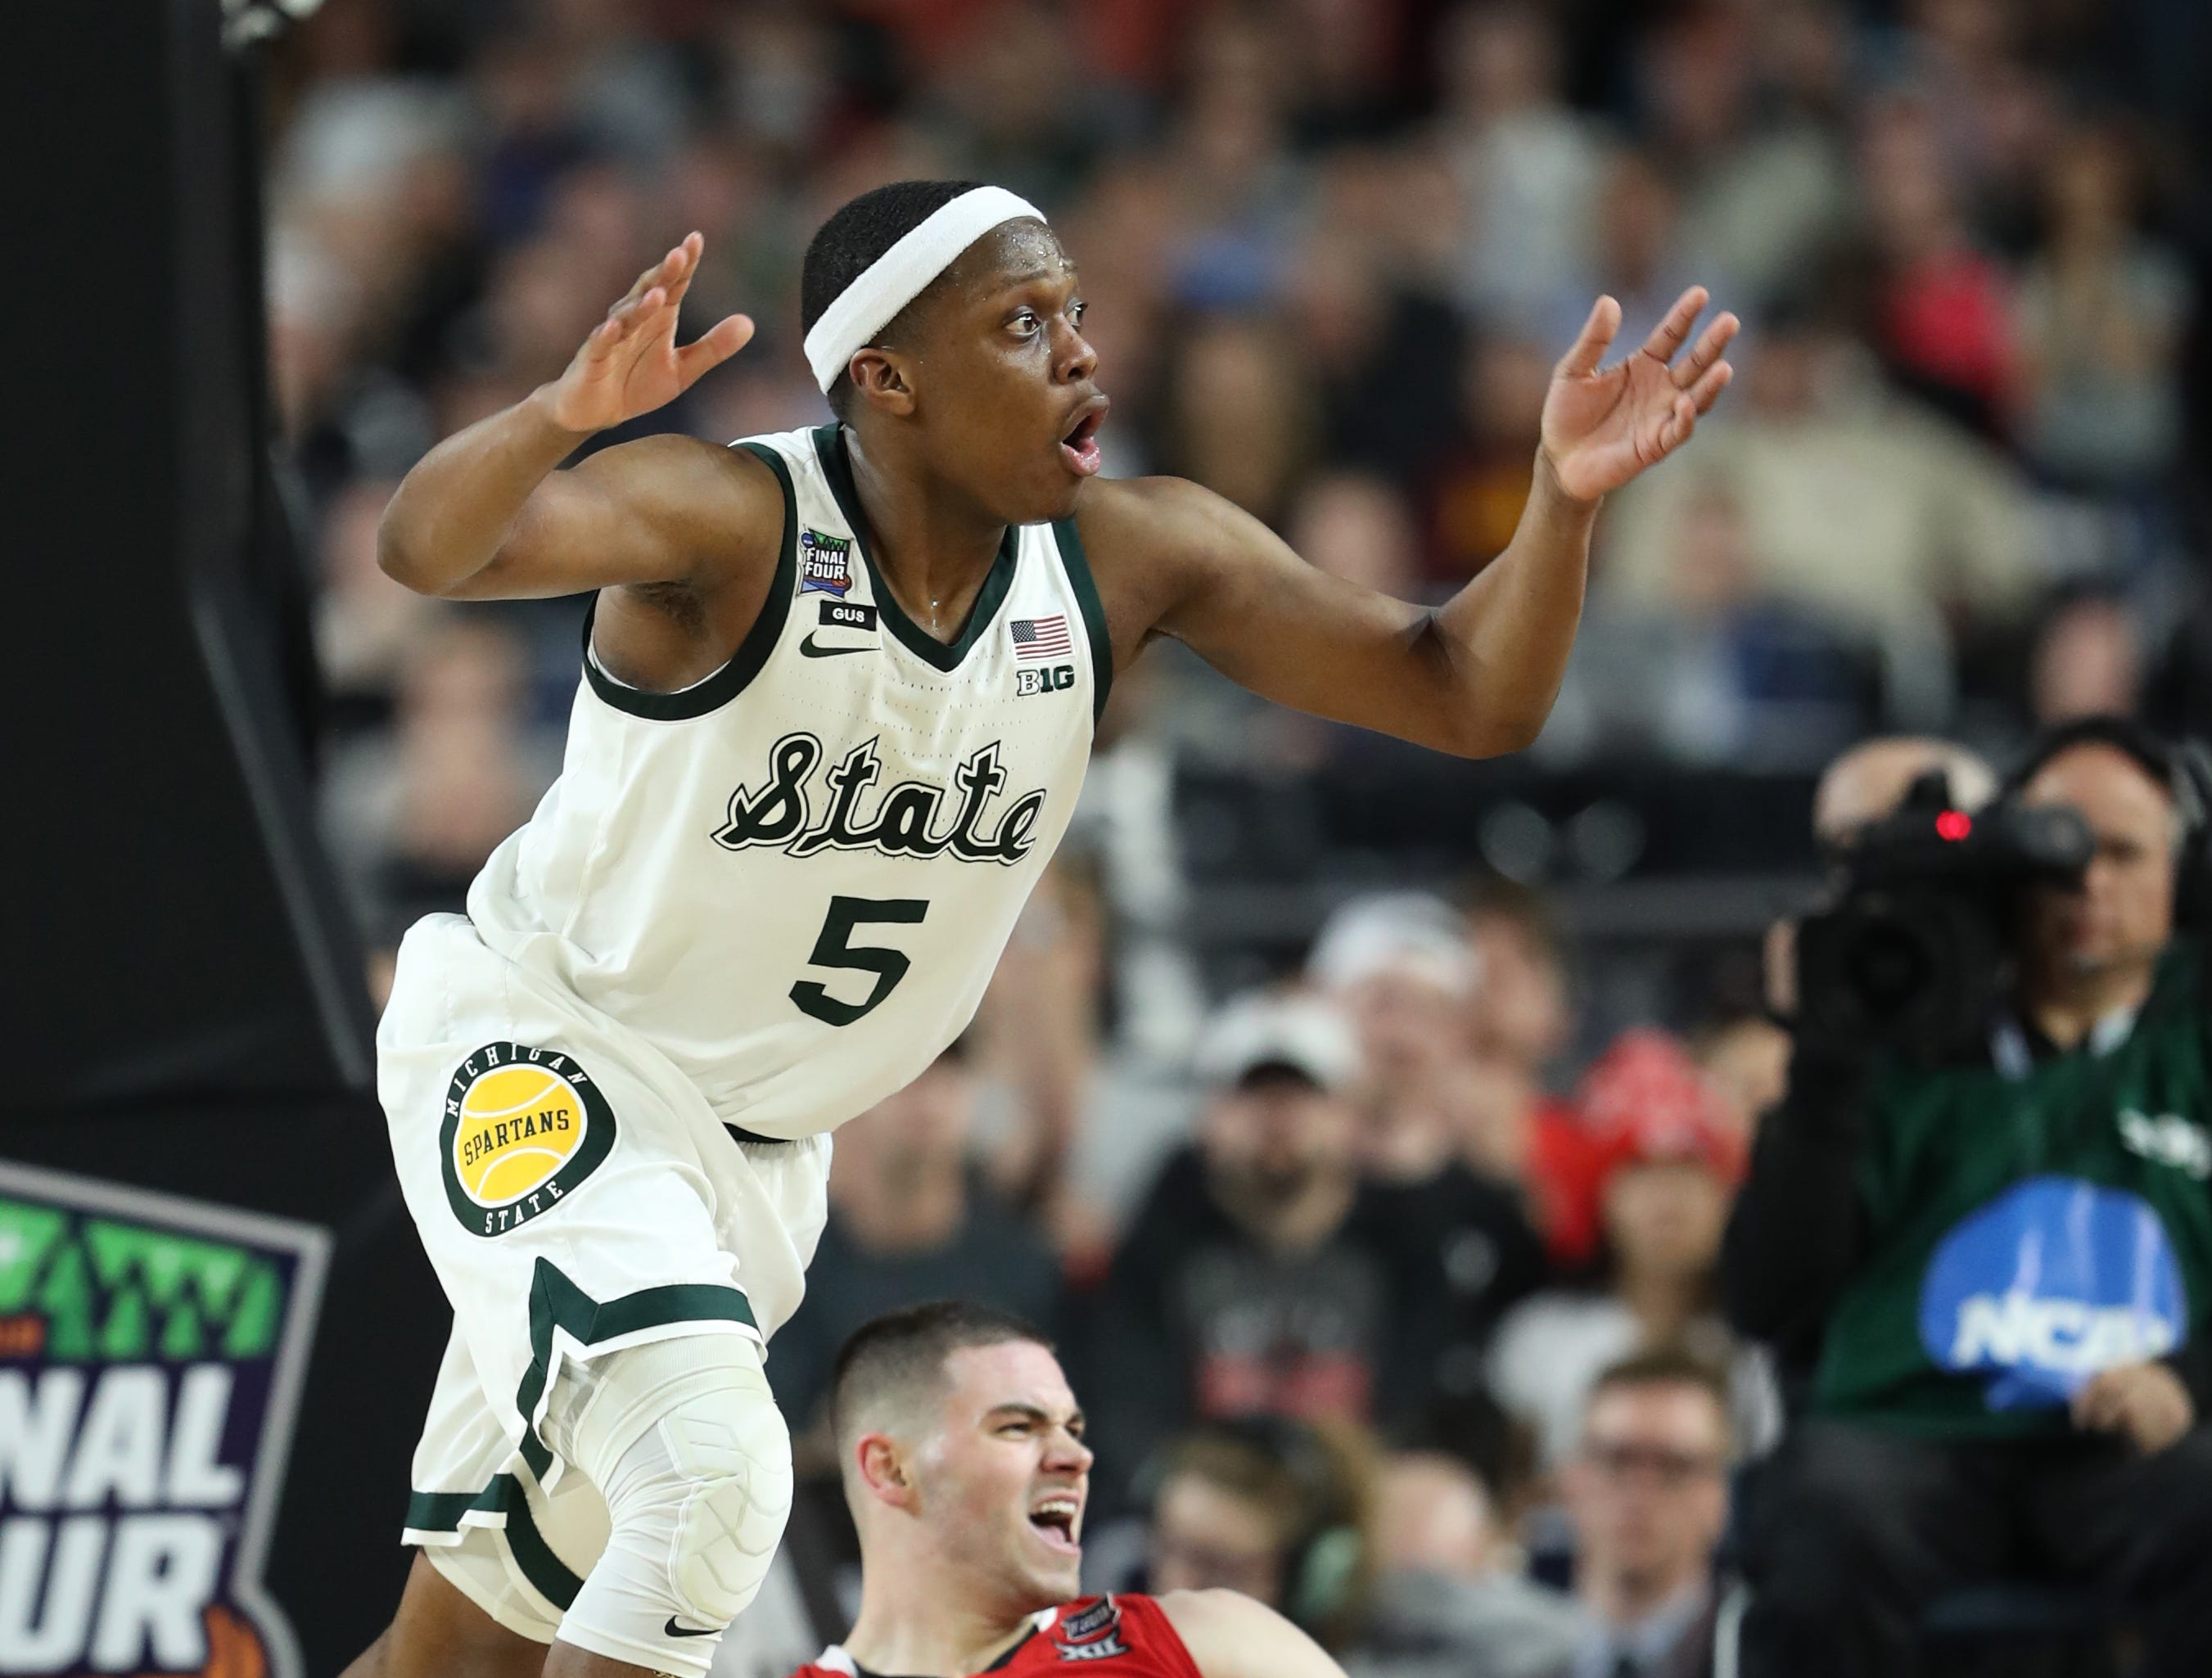 Michigan State guard Cassius Winston (5) reacts to a call as Texas Tech guard Matt Mooney (13) looks on in the second half of the Final Four game at U.S. Bank Stadium in Minneapolis, Minnesota on Saturday, April 06, 2019.